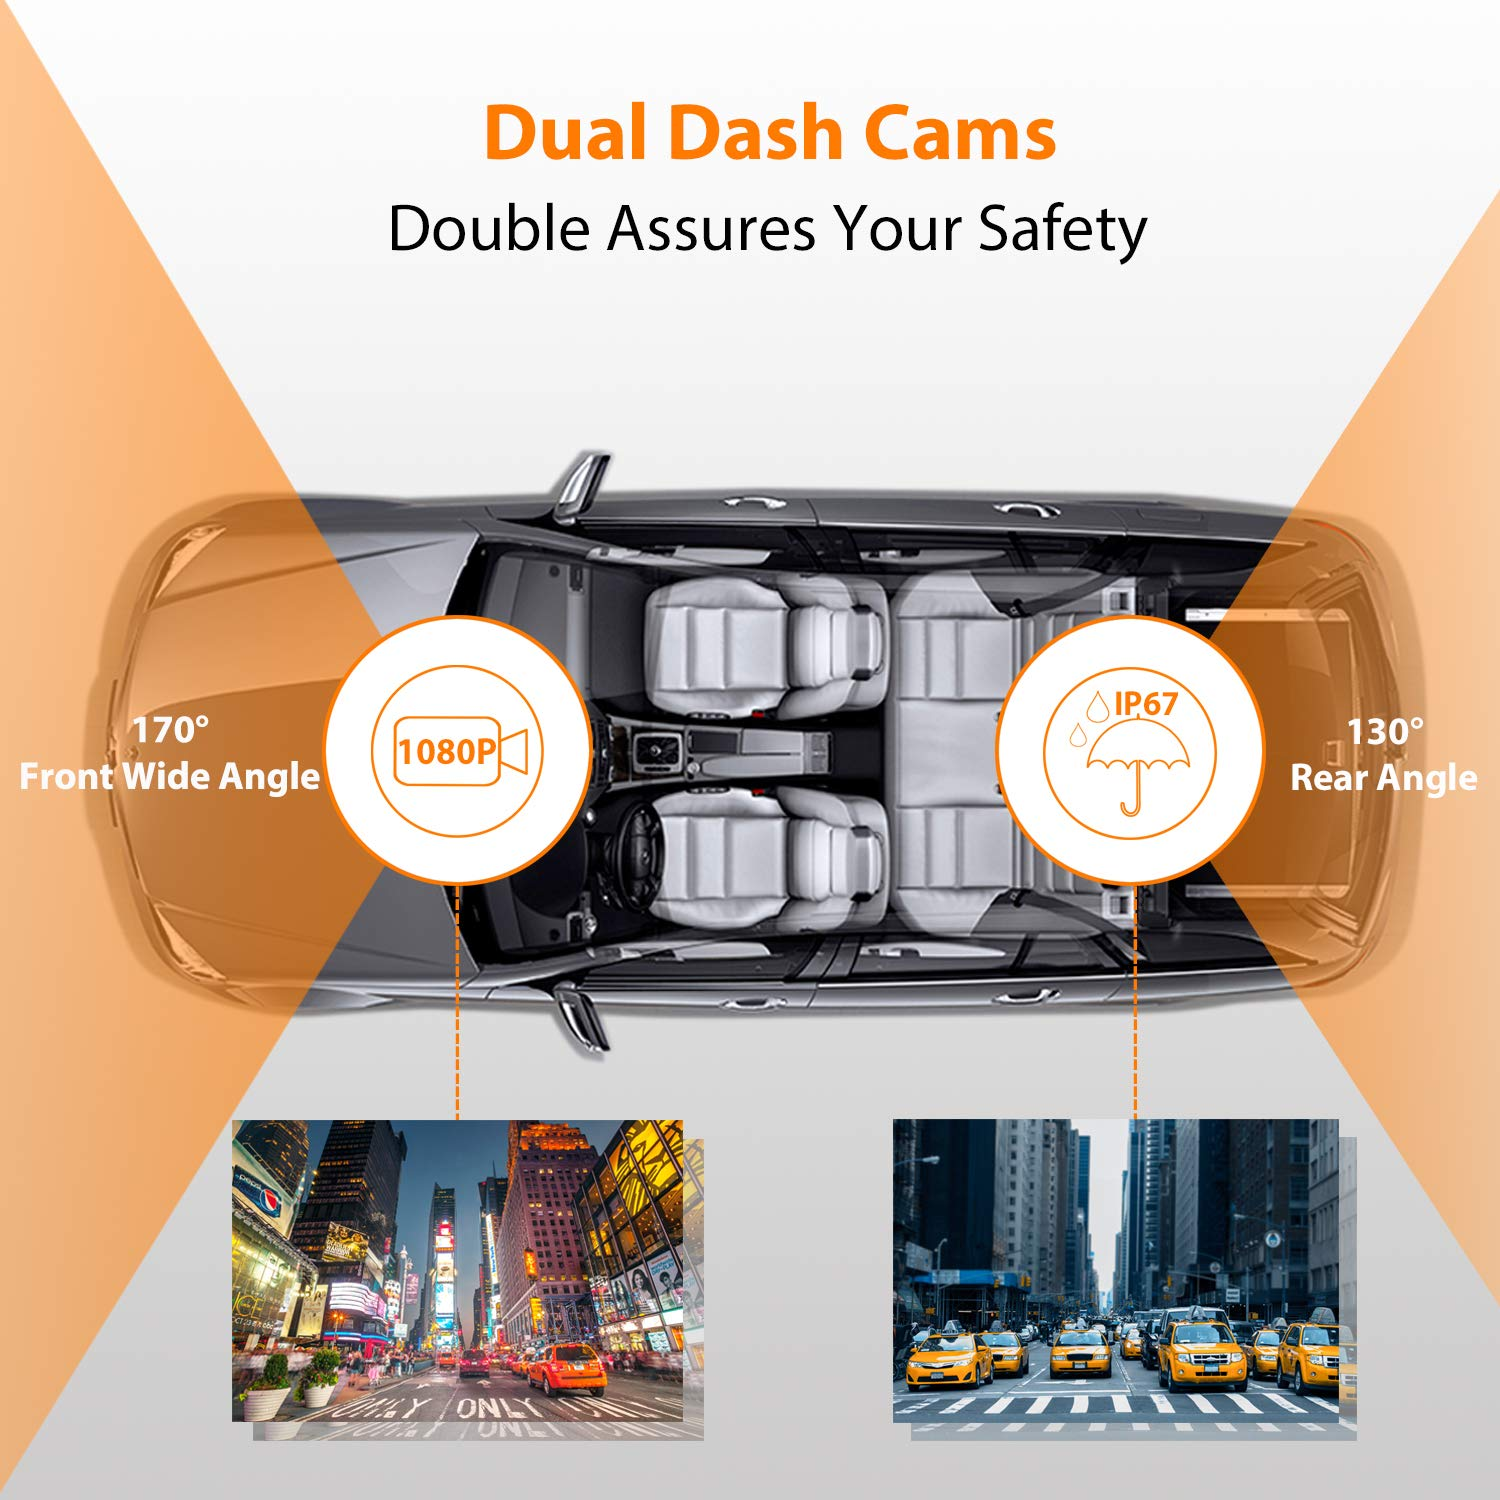 Dual-Dash-Cam-Front-and-Rear-1080p-HD-Car-DVR-Dashboard-Camera-Recorder-with-Night-Vision-4-inch-IPS-Touch-Screen-170-Super-Wide-Angle-G-Sensor-Parking-Monitor-Motion-Detection-WDR